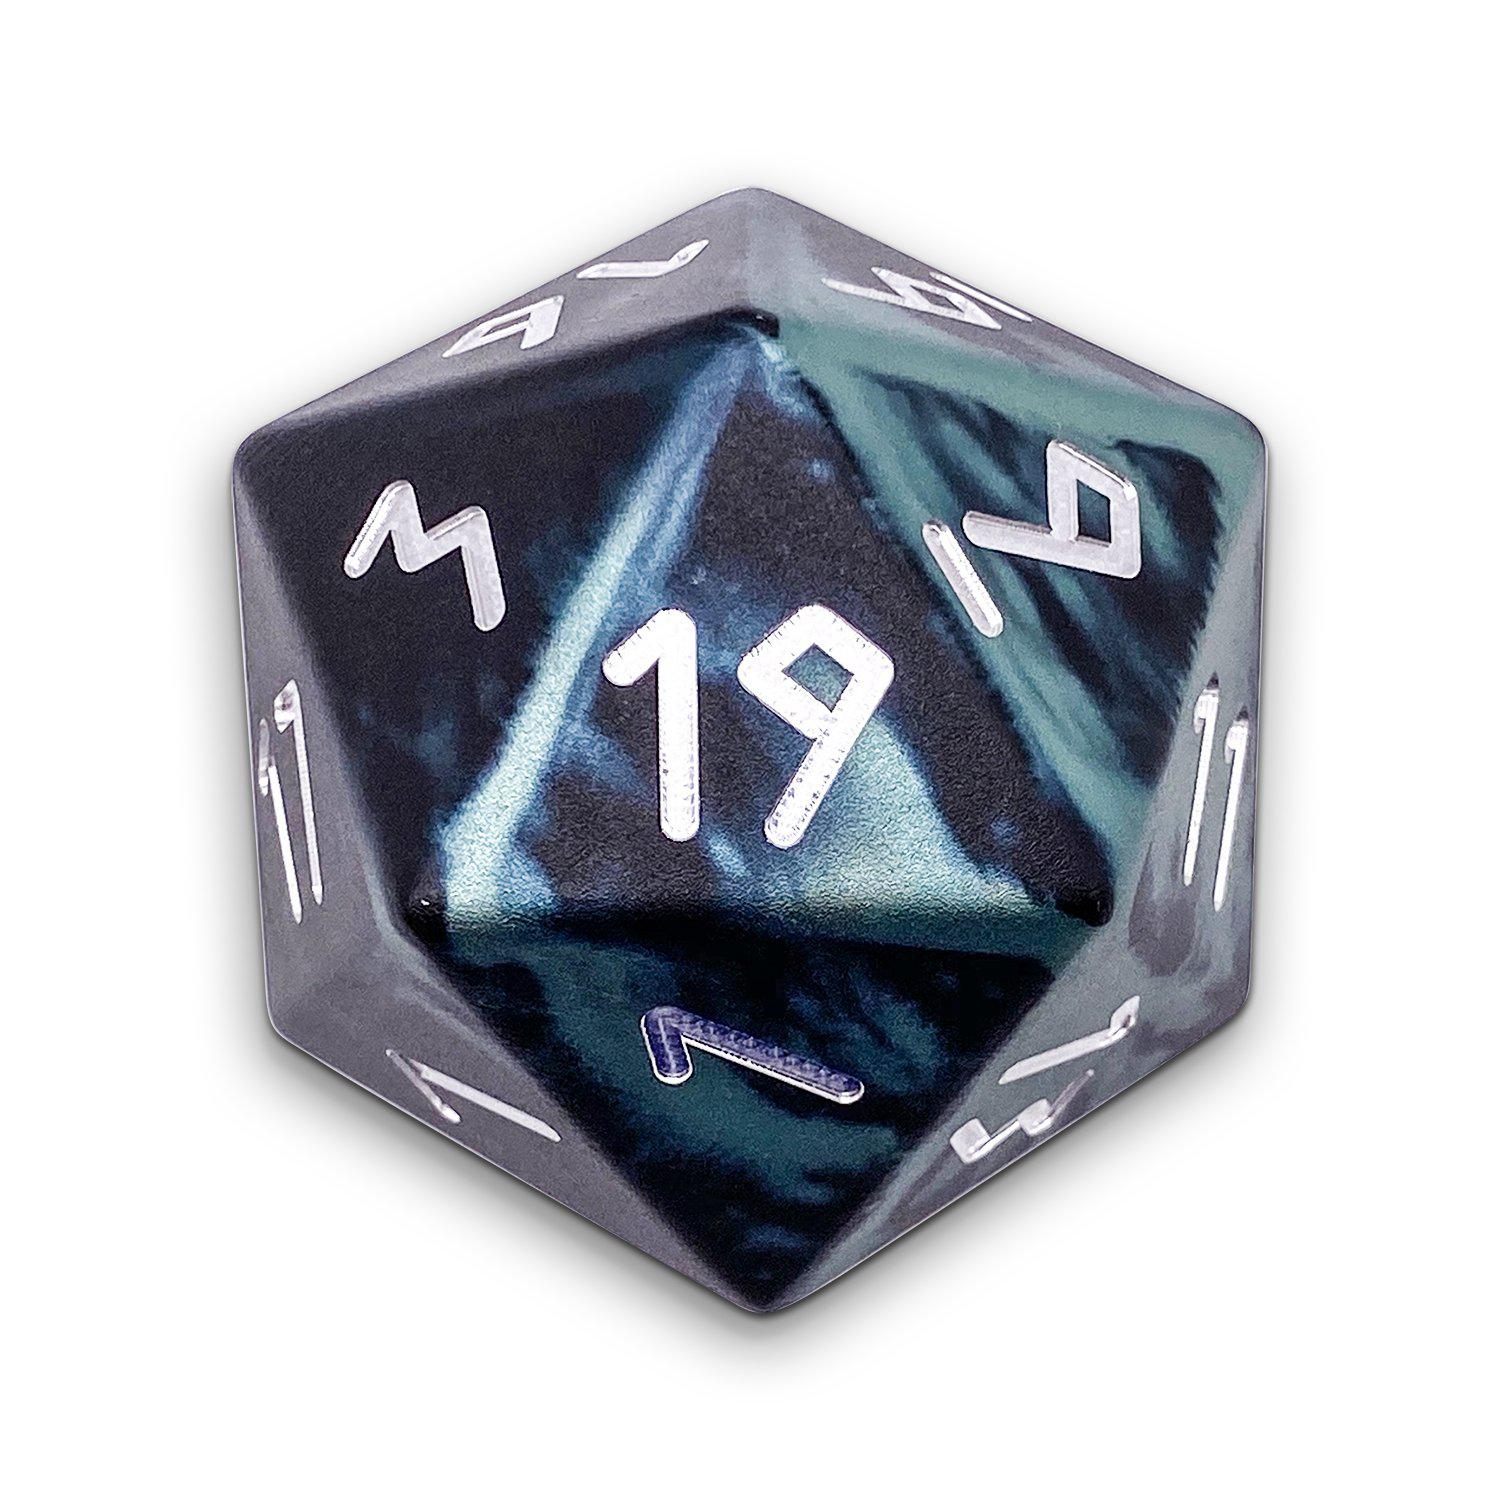 Trolls Blood - Wondrous Boulder® 55mm D20 6063 Aircraft Grade Aluminum Metal Die